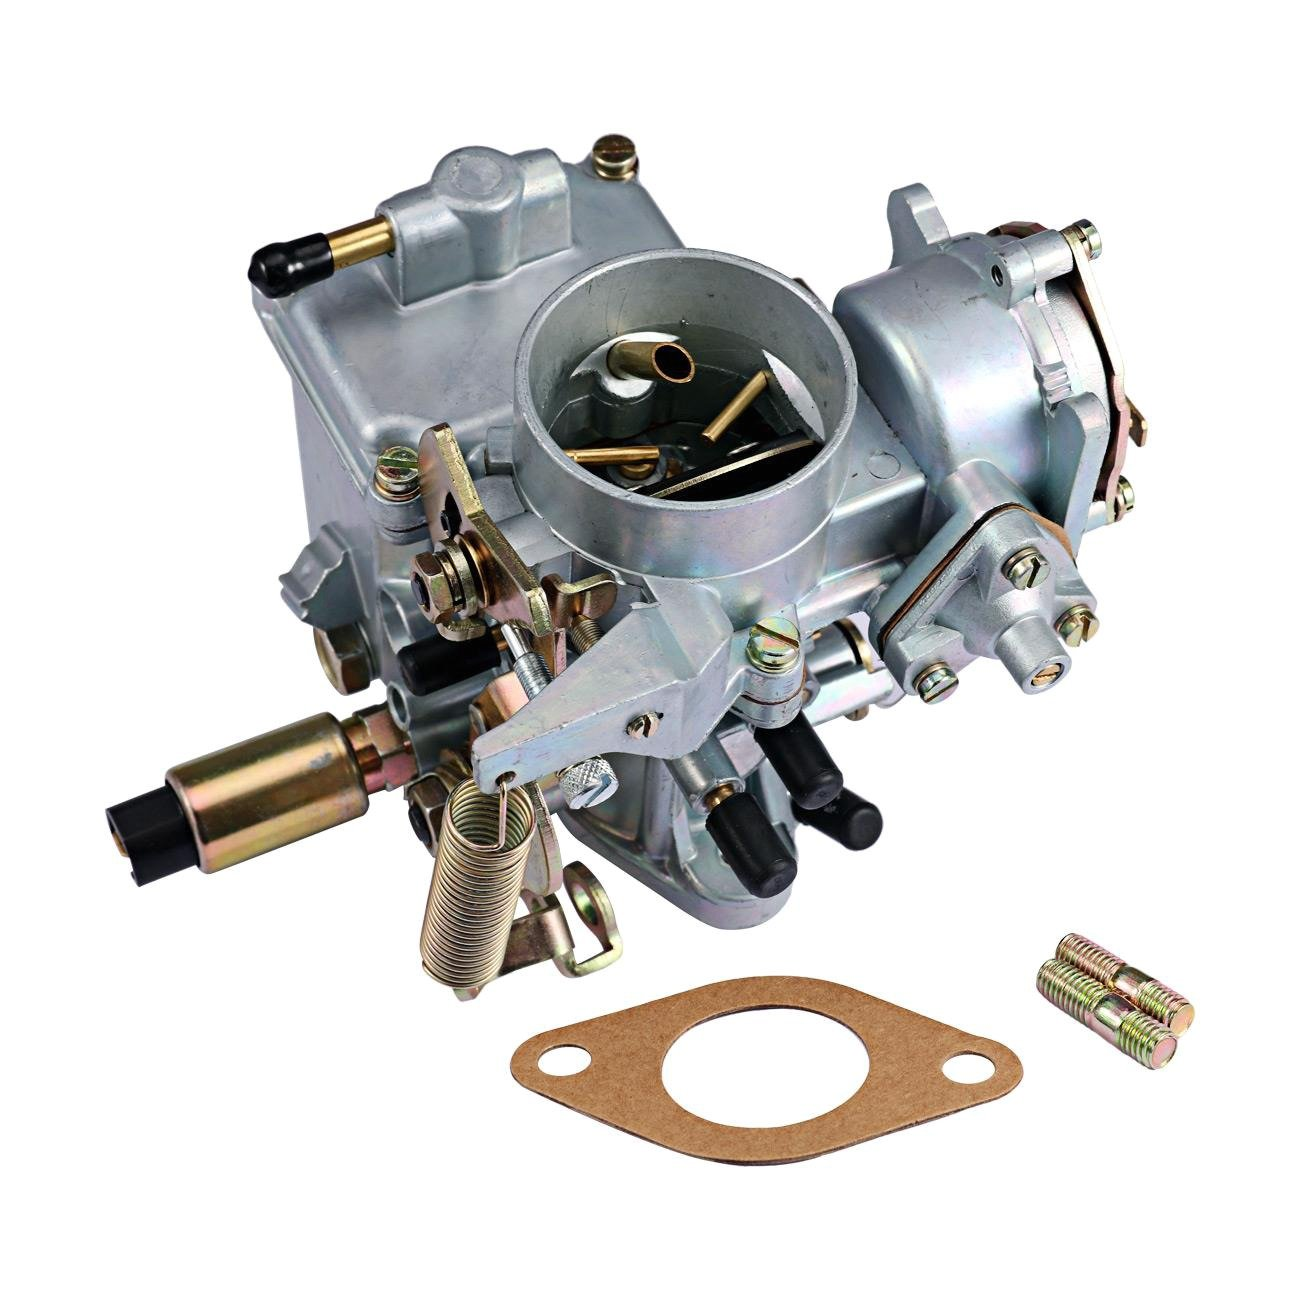 hight resolution of get quotations alavente carburetor carb for vw volkswagen beetle karmann ghia 30 31 pict 3 type